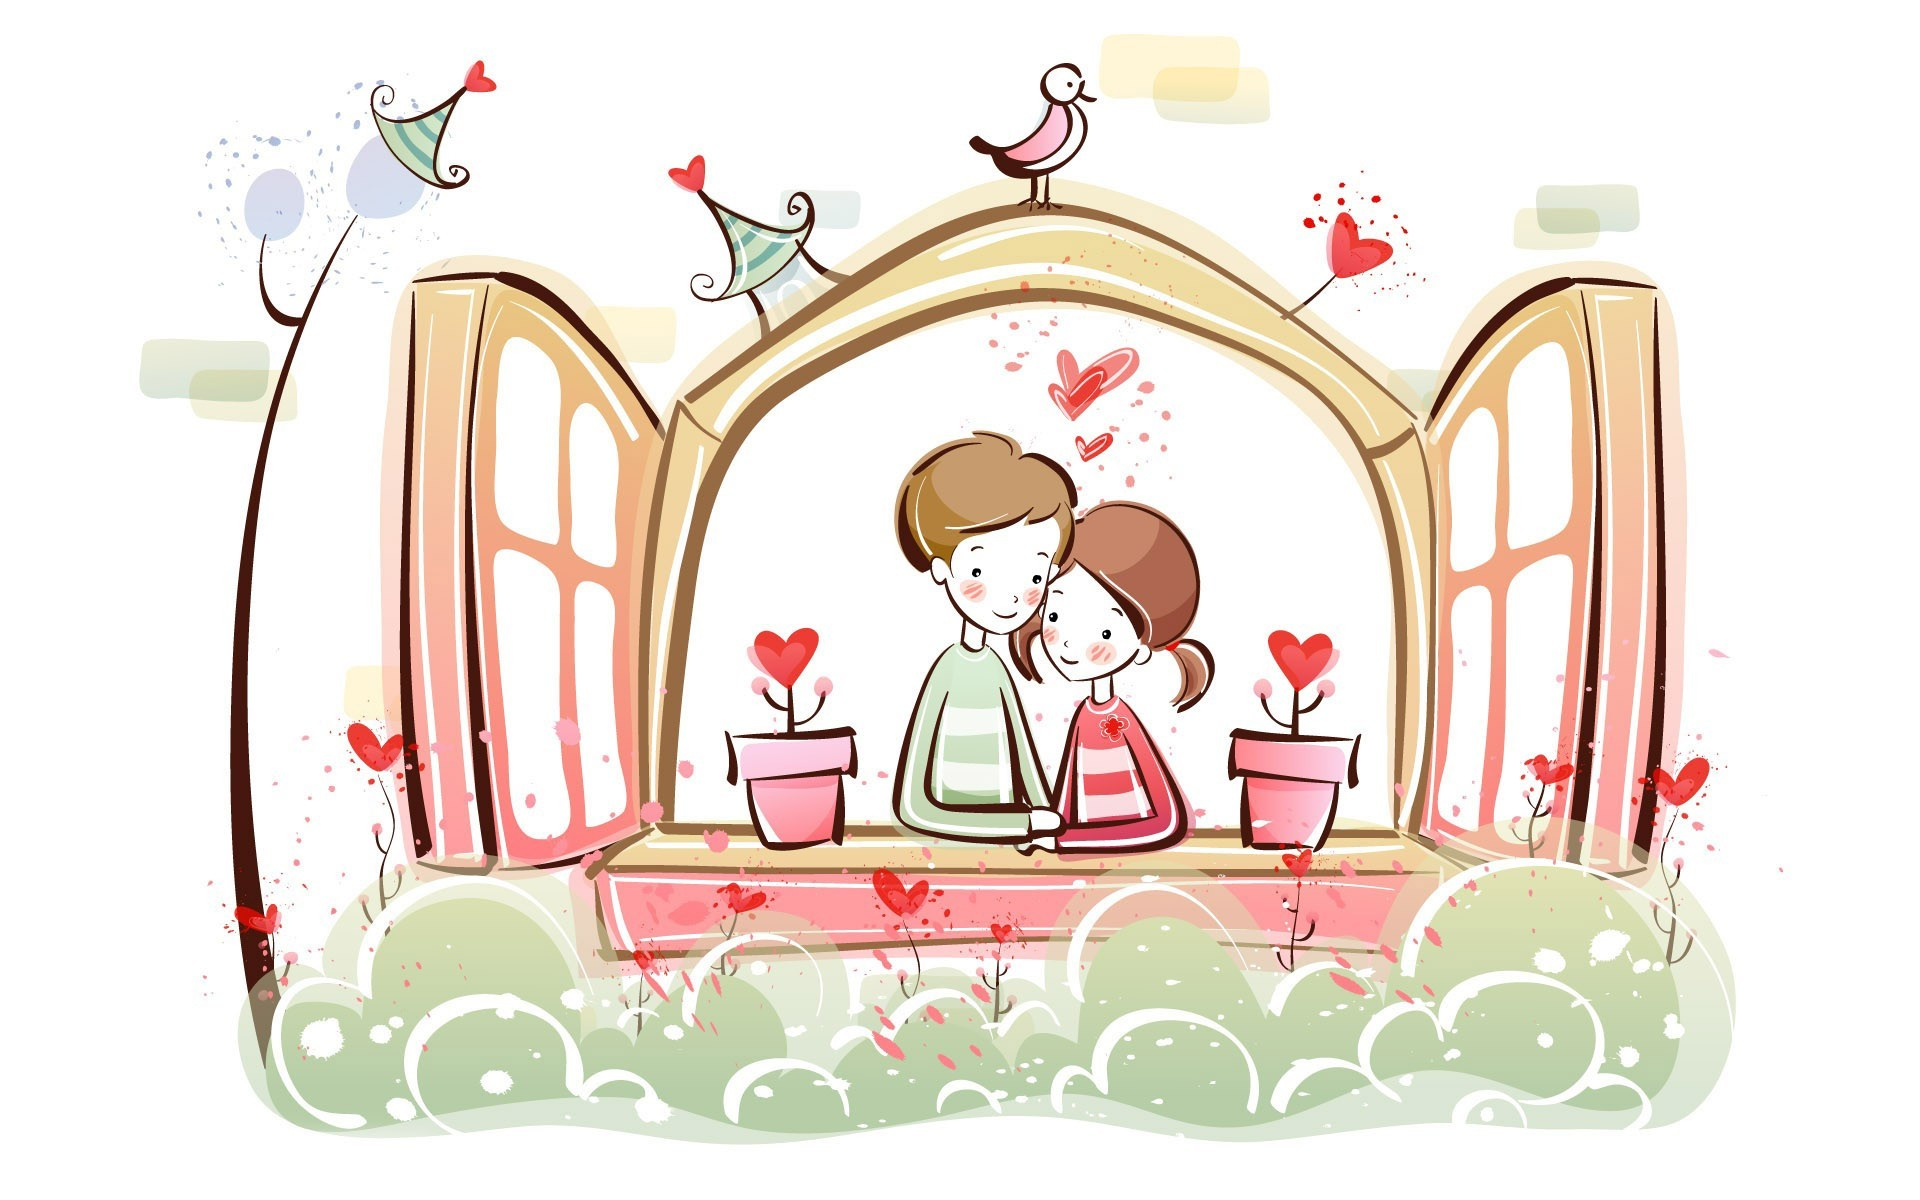 Sweet Love cartoon Wallpaper : cartoon Love Wallpaper - Wallpaper, High Definition, High Quality, Widescreen